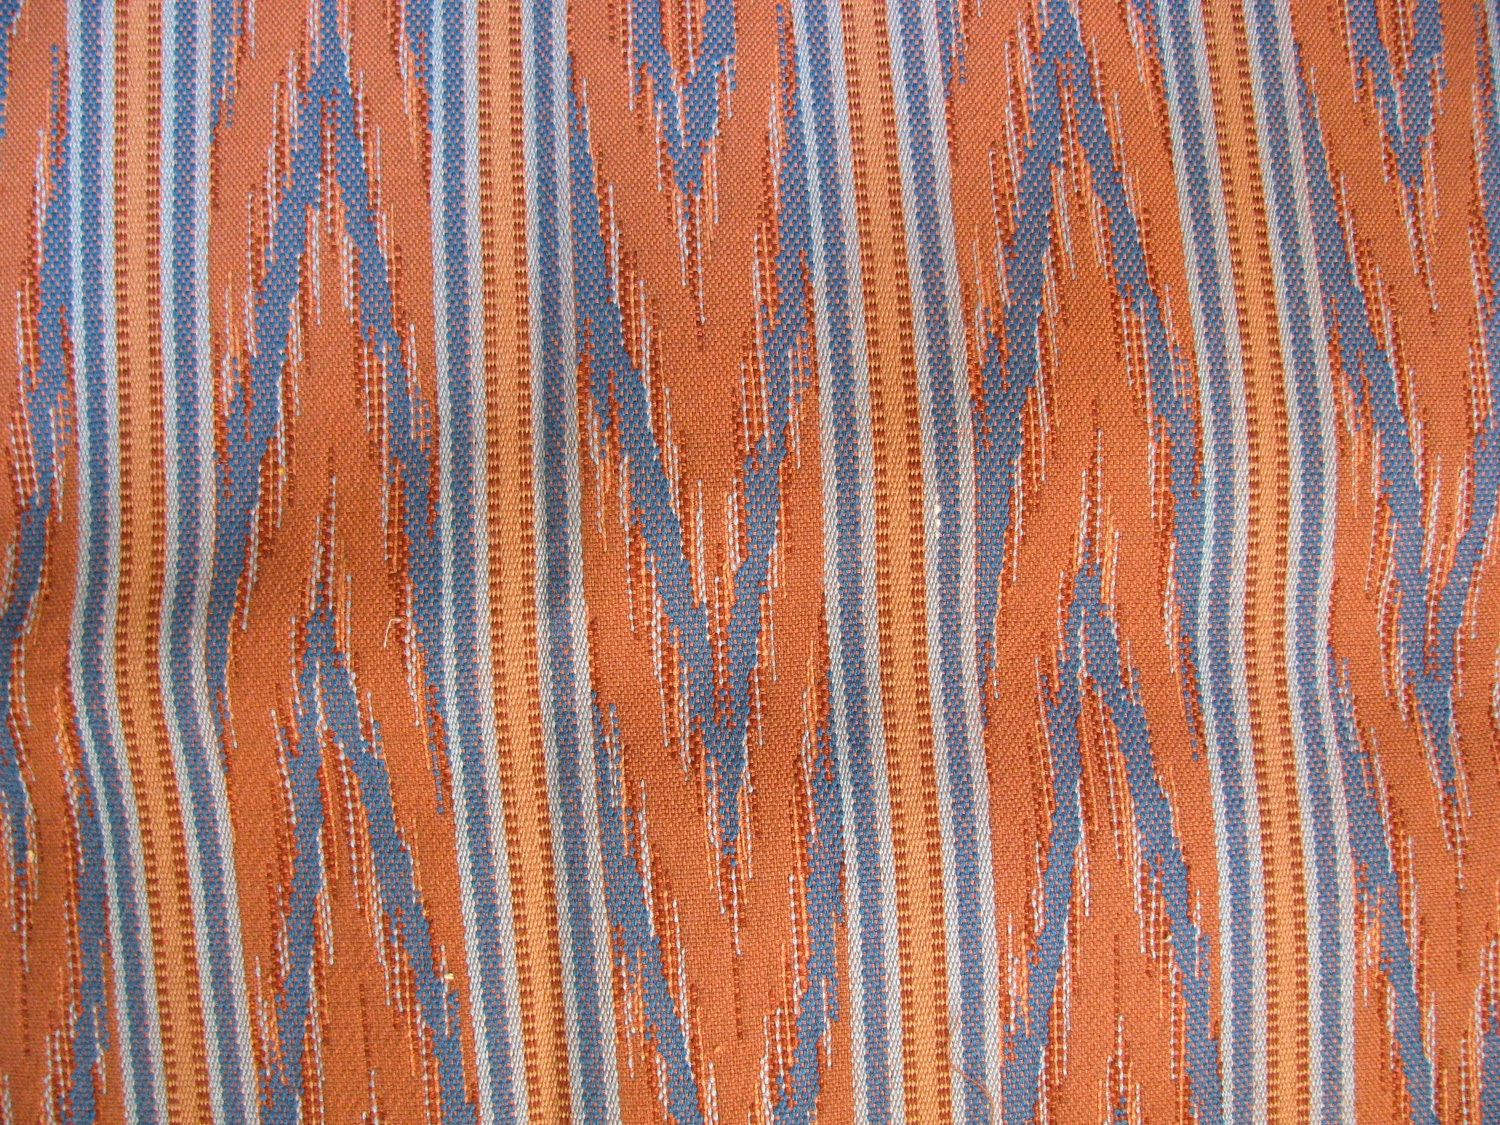 destash upholstery fabric in orange and blue. Black Bedroom Furniture Sets. Home Design Ideas